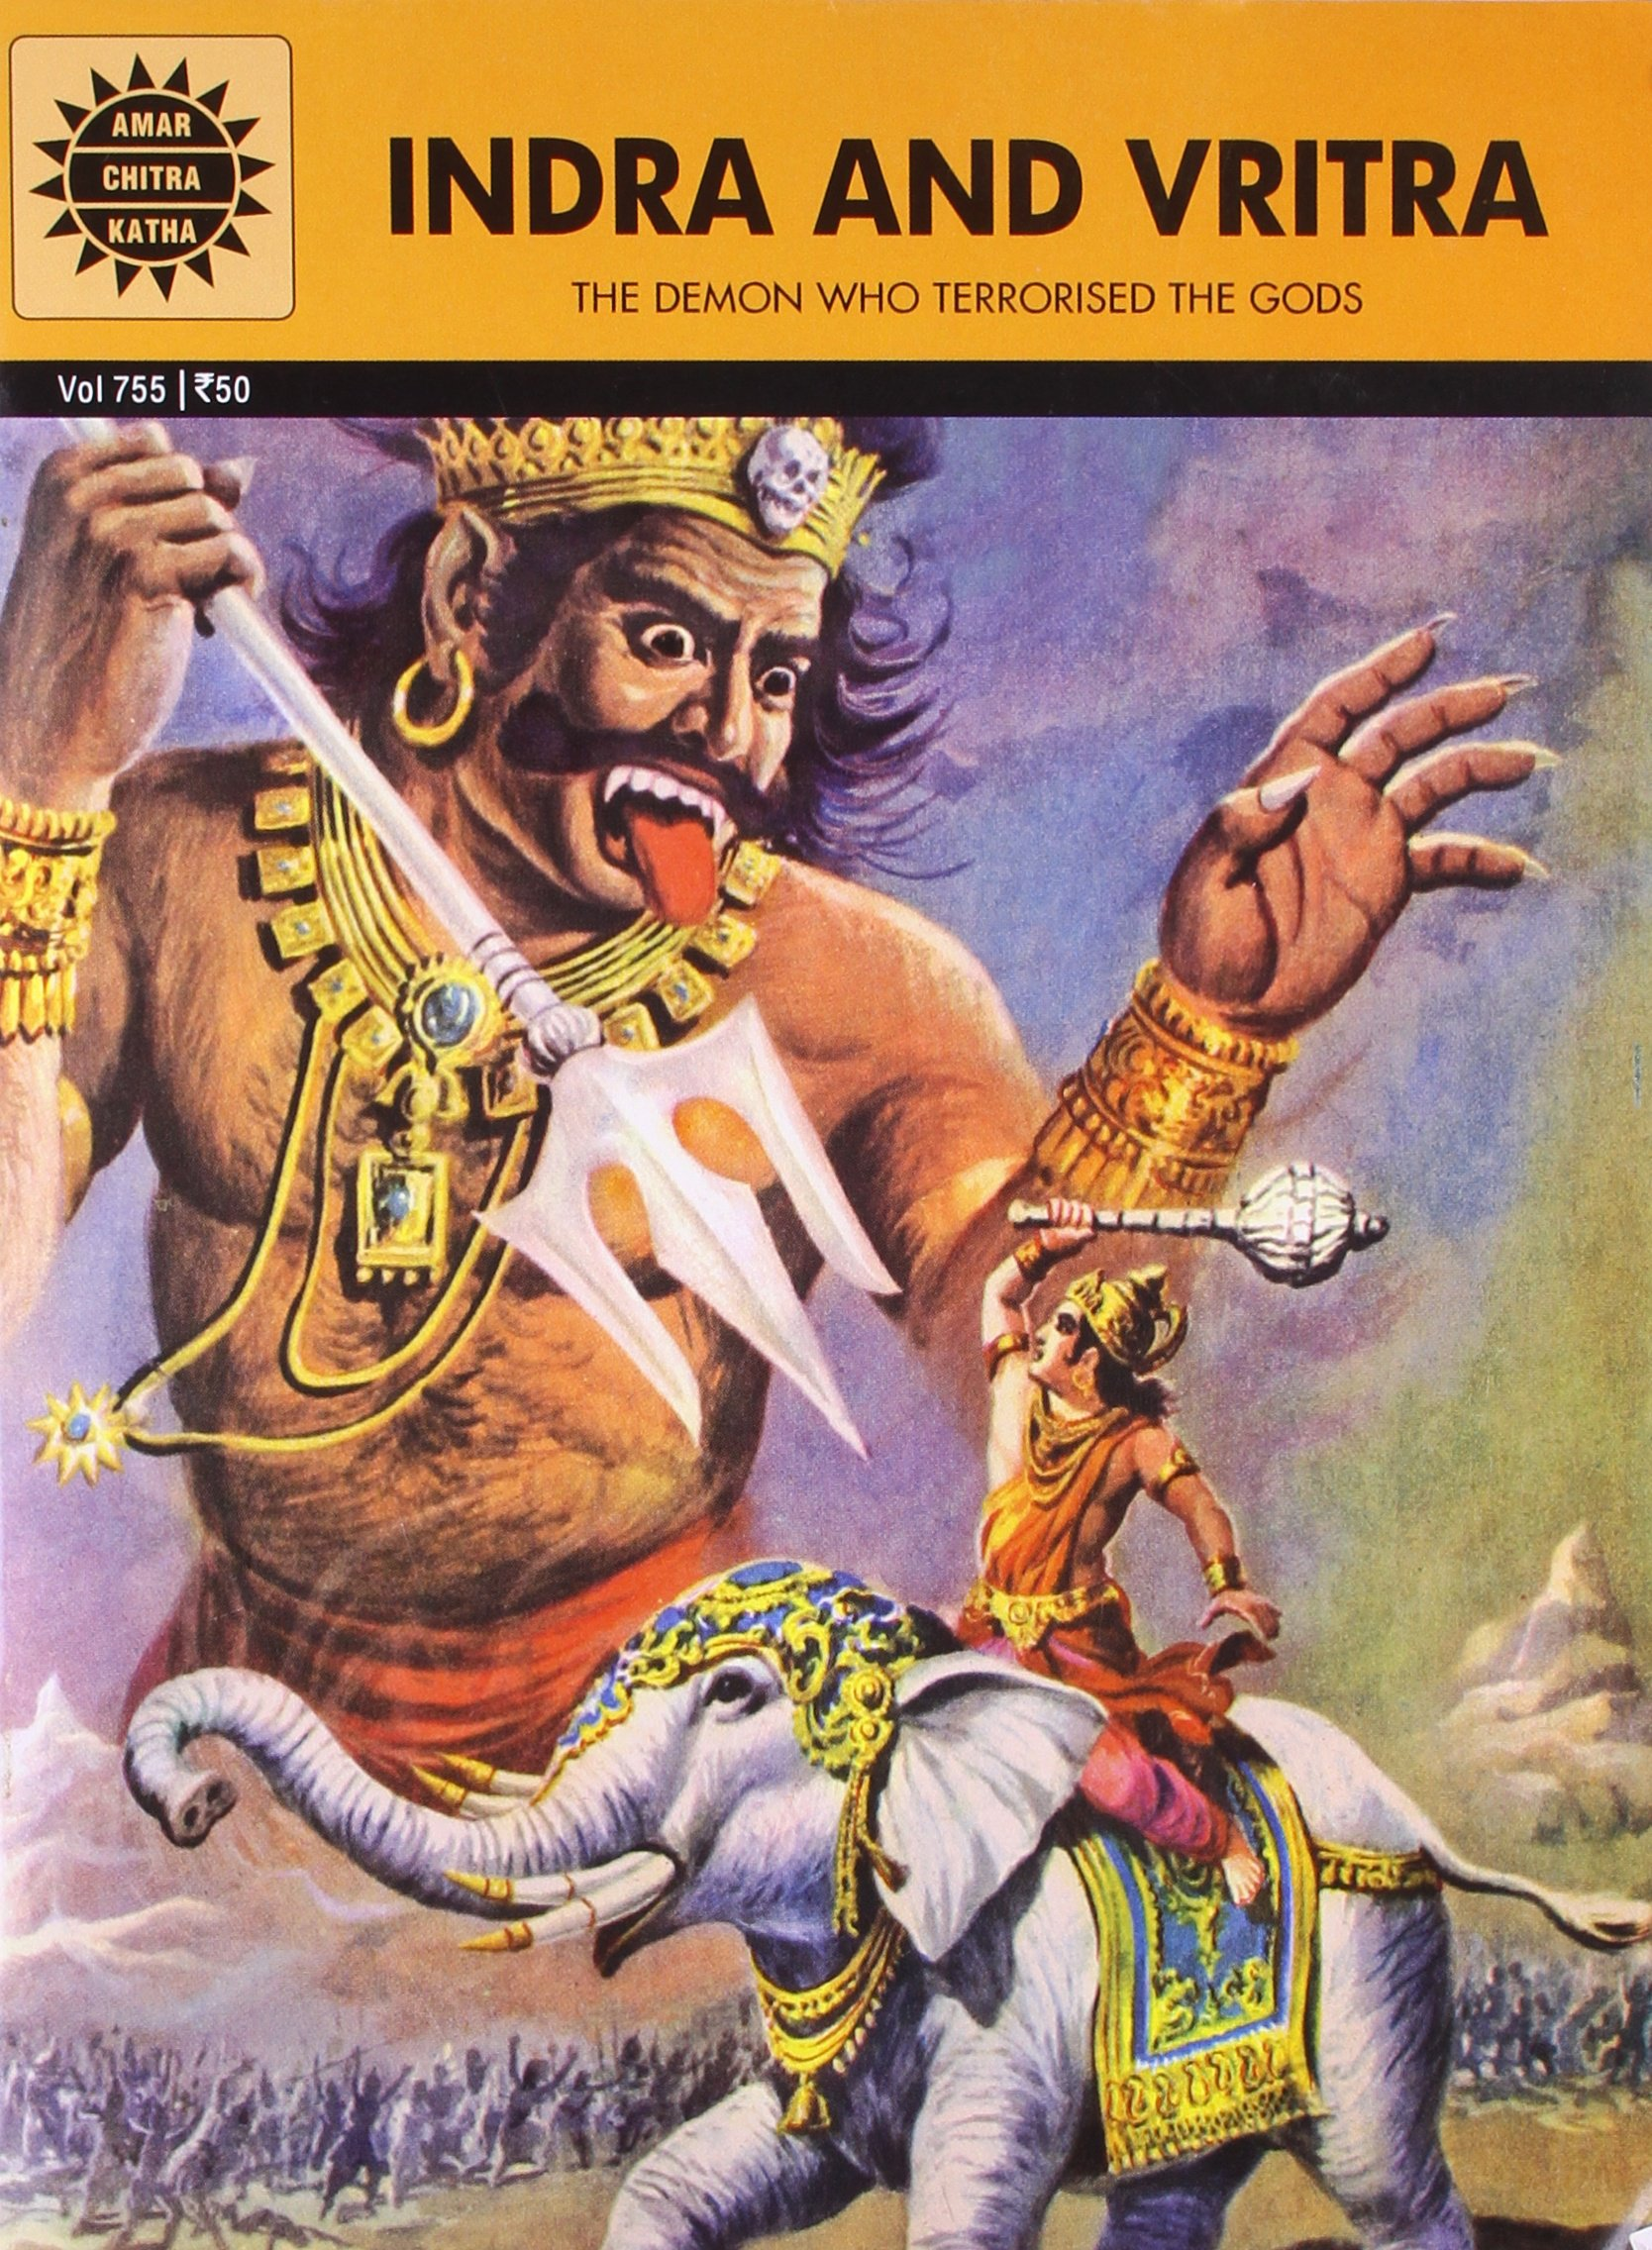 buy indra and vritra amar chitra katha book online at low prices